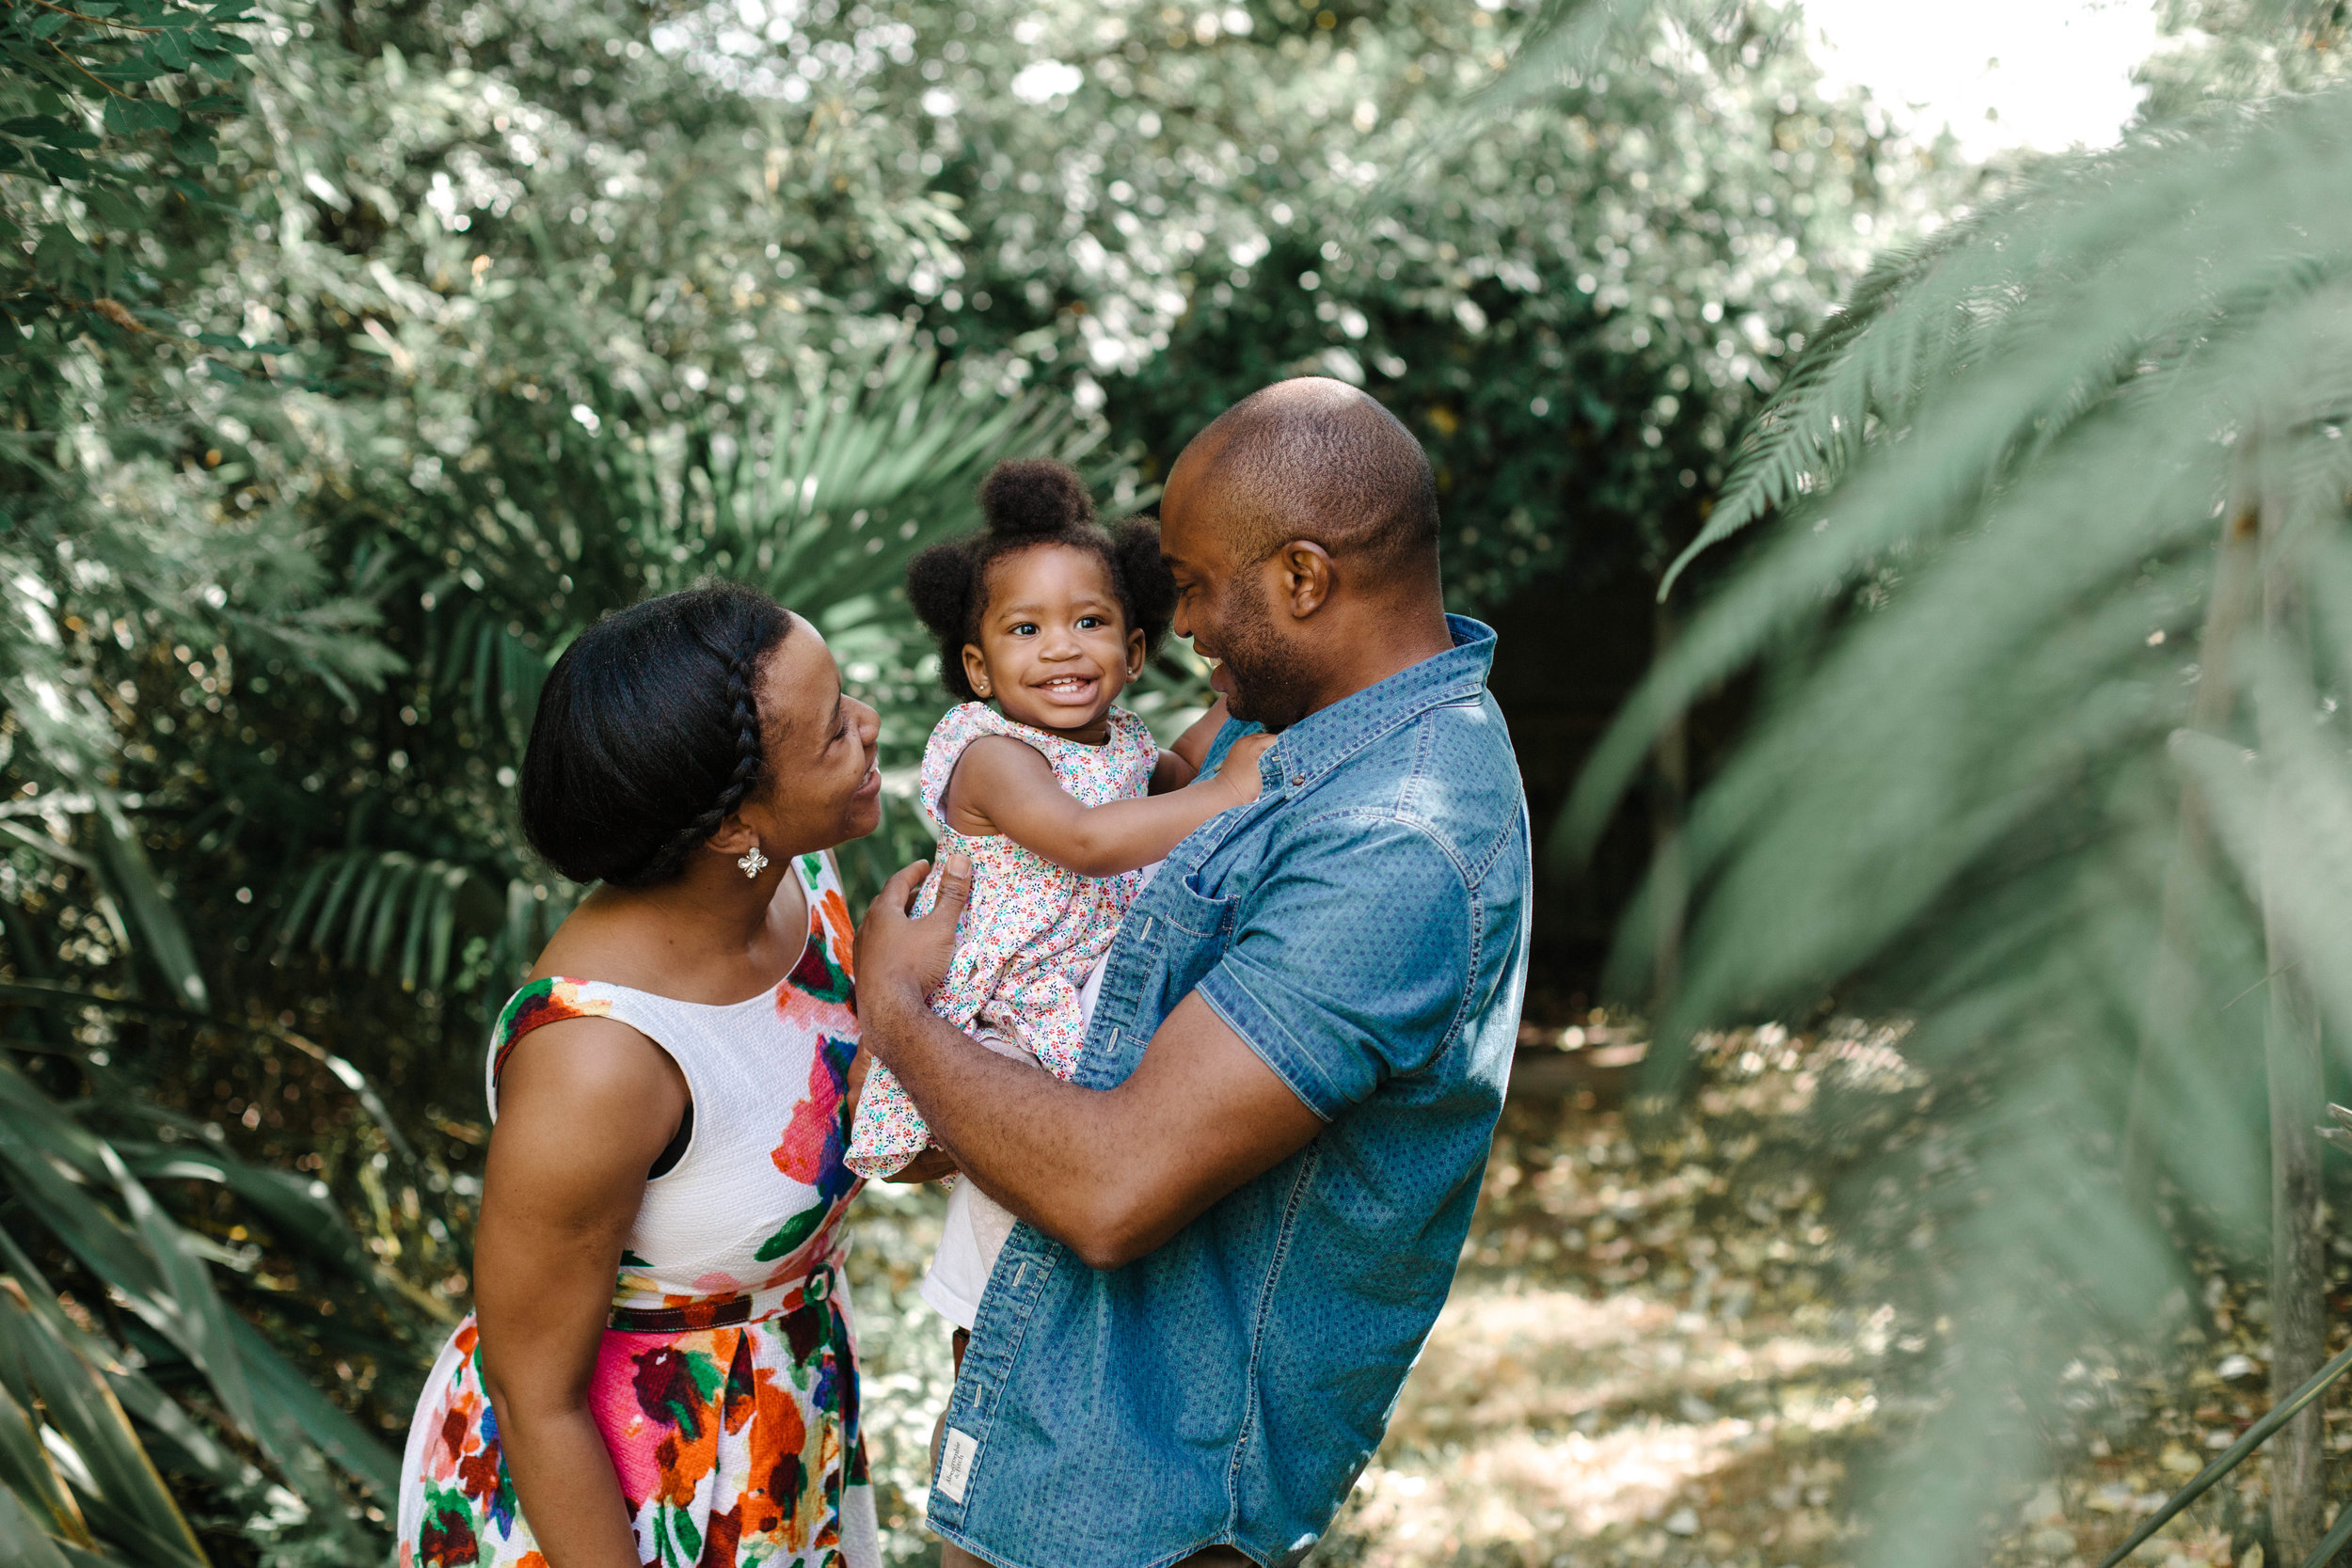 LittleKinPhotography_richmond_photographer_family03.jpg